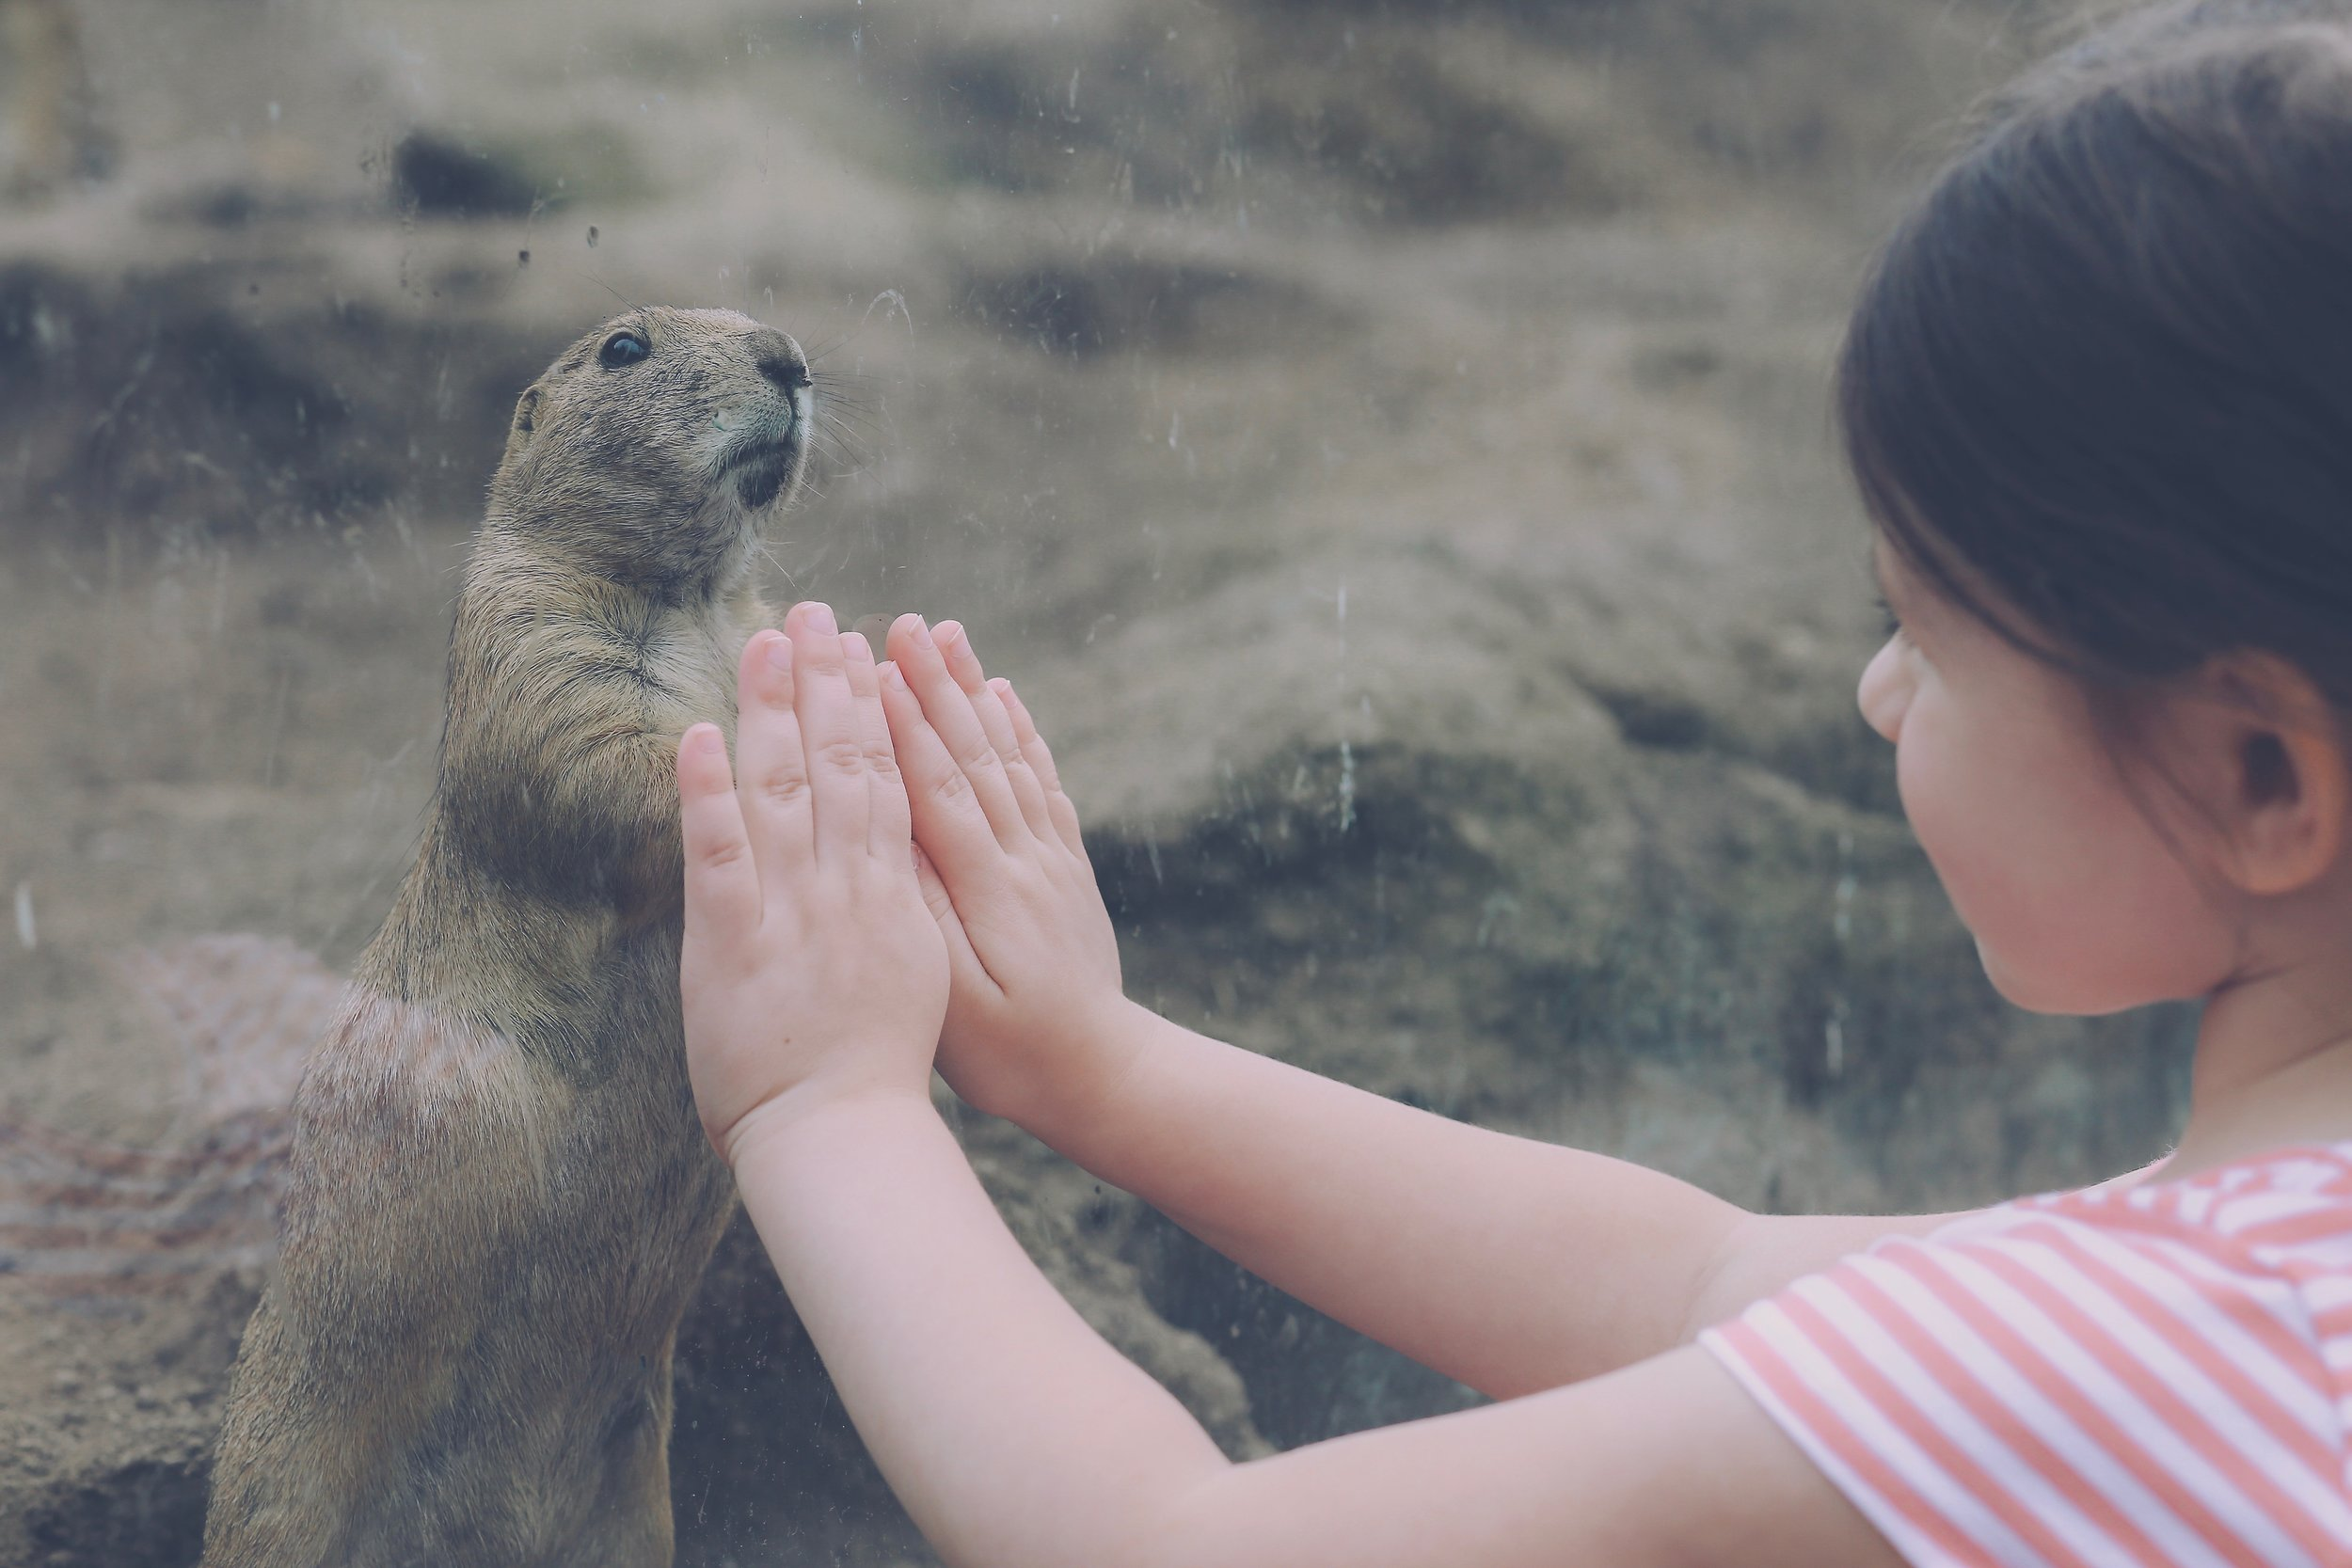 Visiting the prairie dogs at the Turtle Back Zoo in West Orange, NJ.